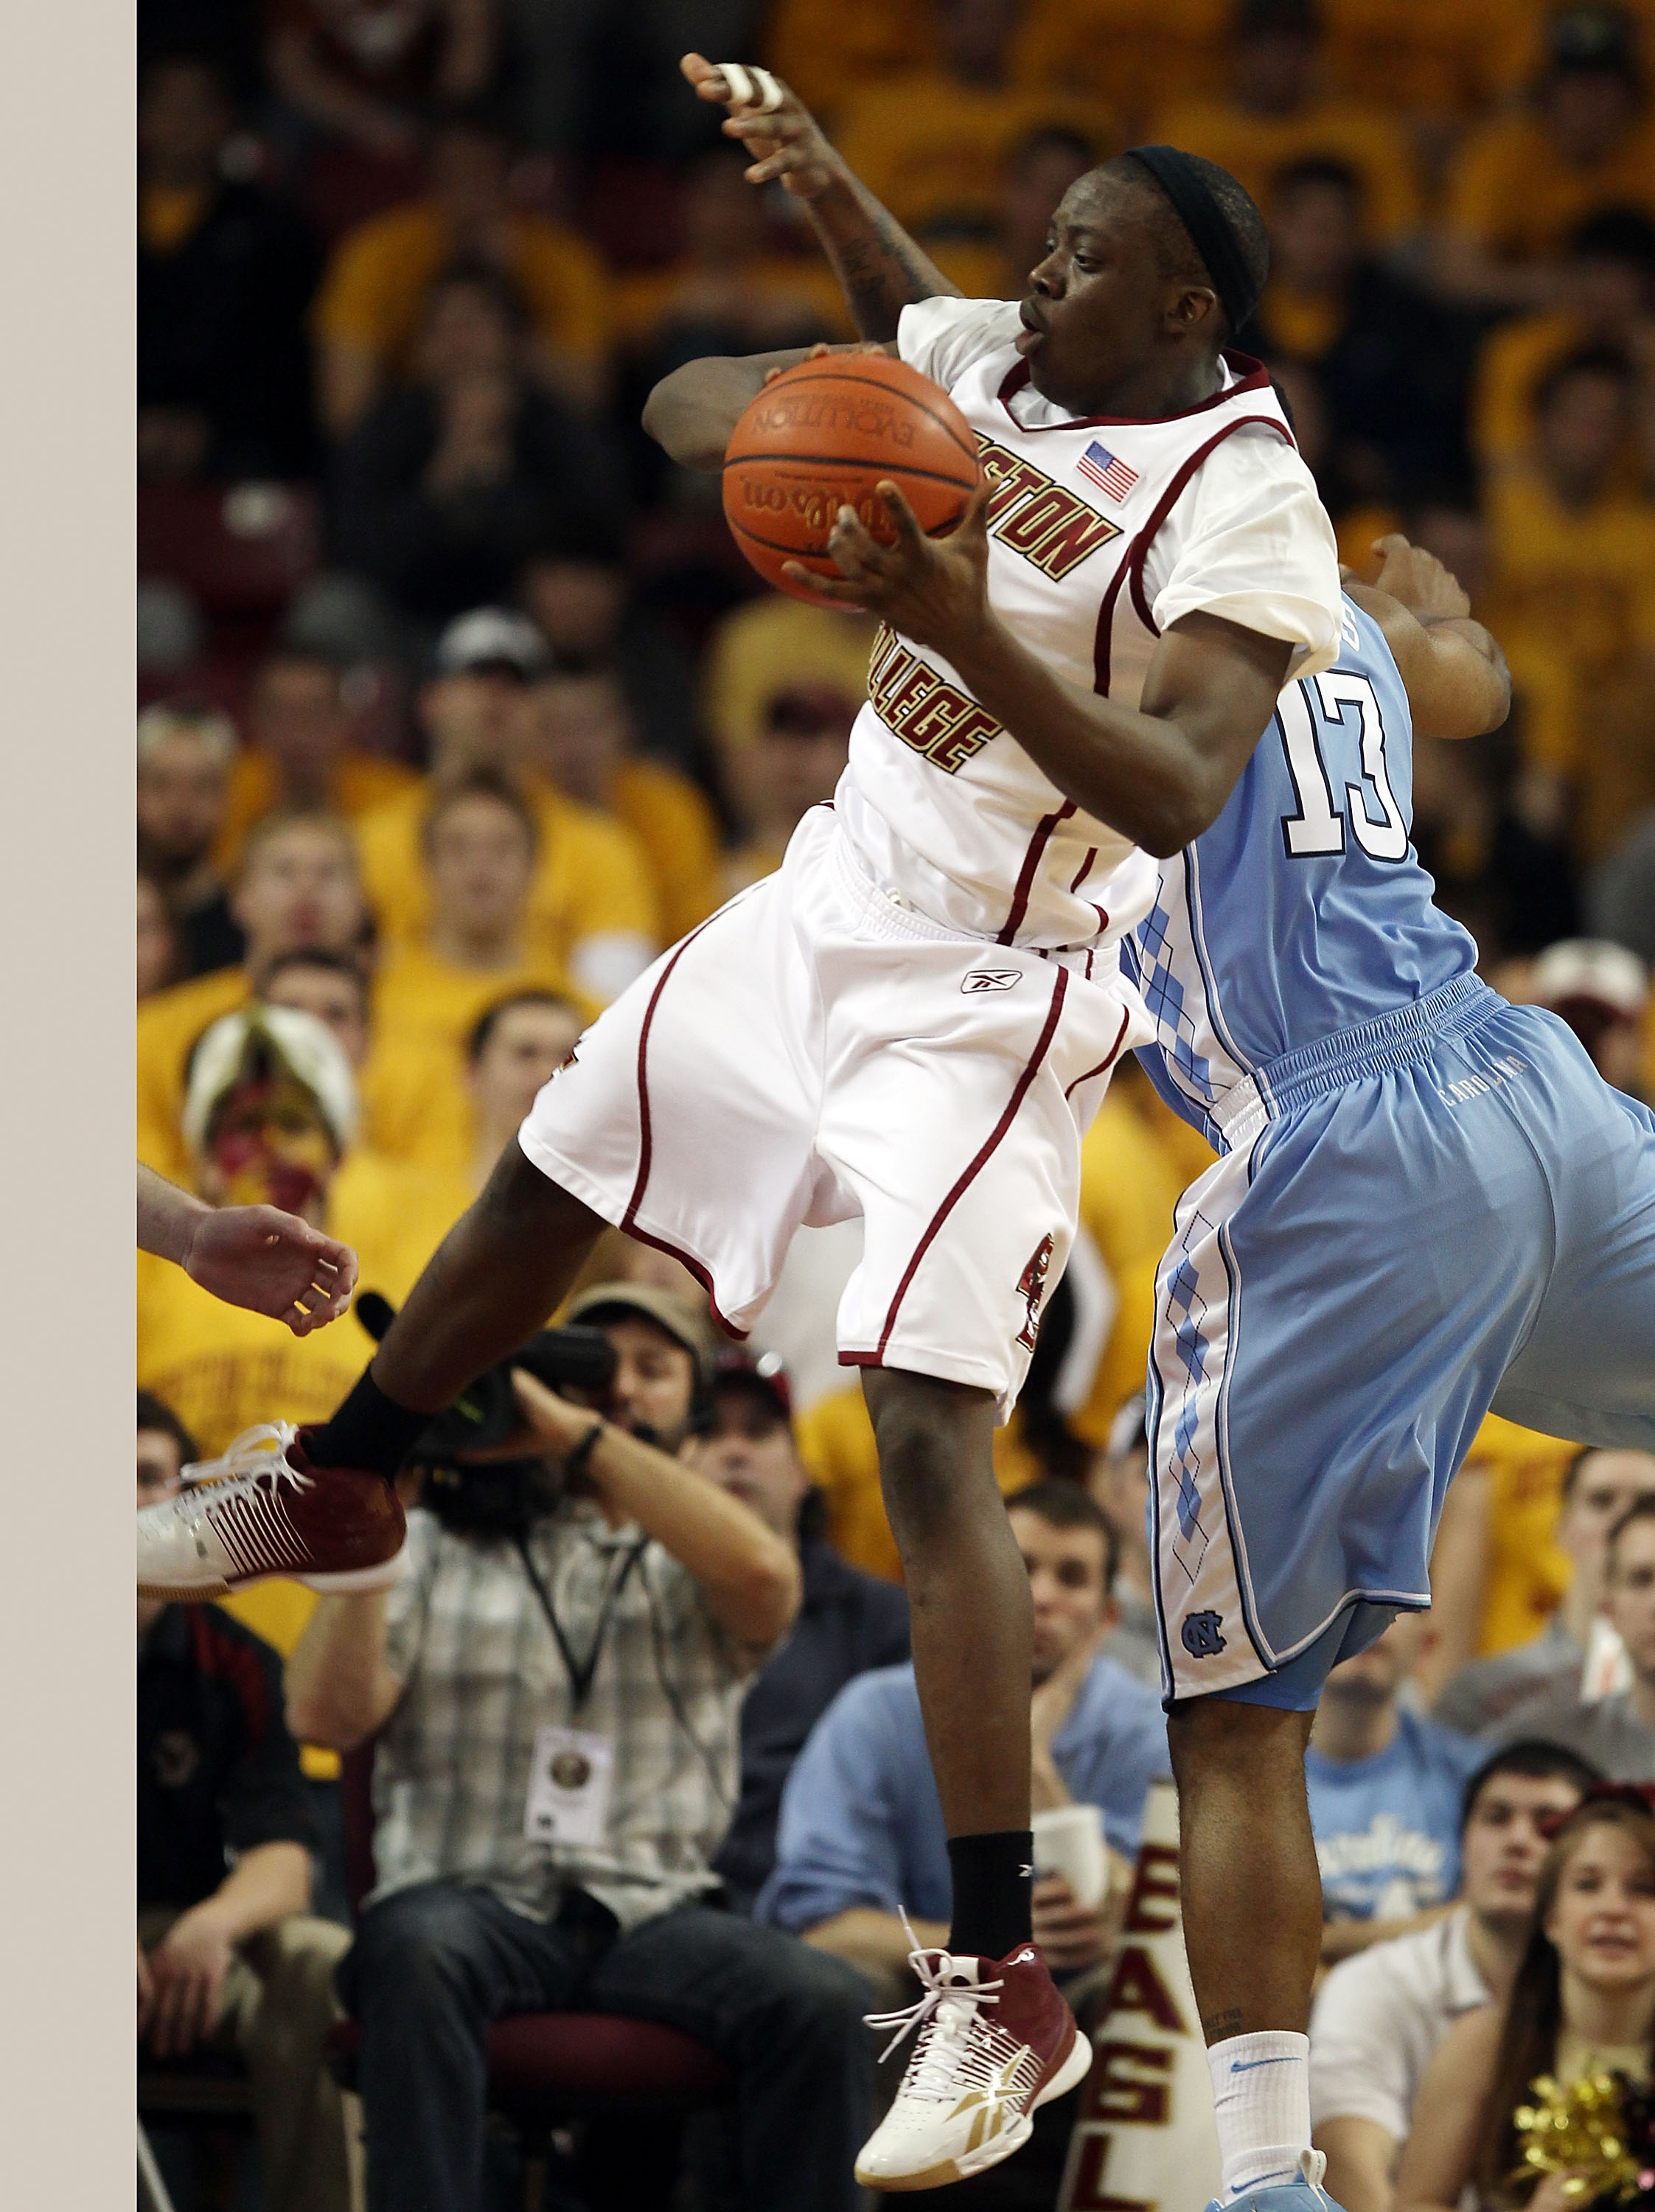 CHESTNUT HILL, MA - FEBRUARY 20:  Reggie Jackson #0 of the Boston College Eagles goes up for two as Will Graves #13  the North Carolina Tar Heels defends on February 20, 2010 at Conte Forum in Chestnut Hill, Massachusetts. The Eagles defeated the Tar Heel